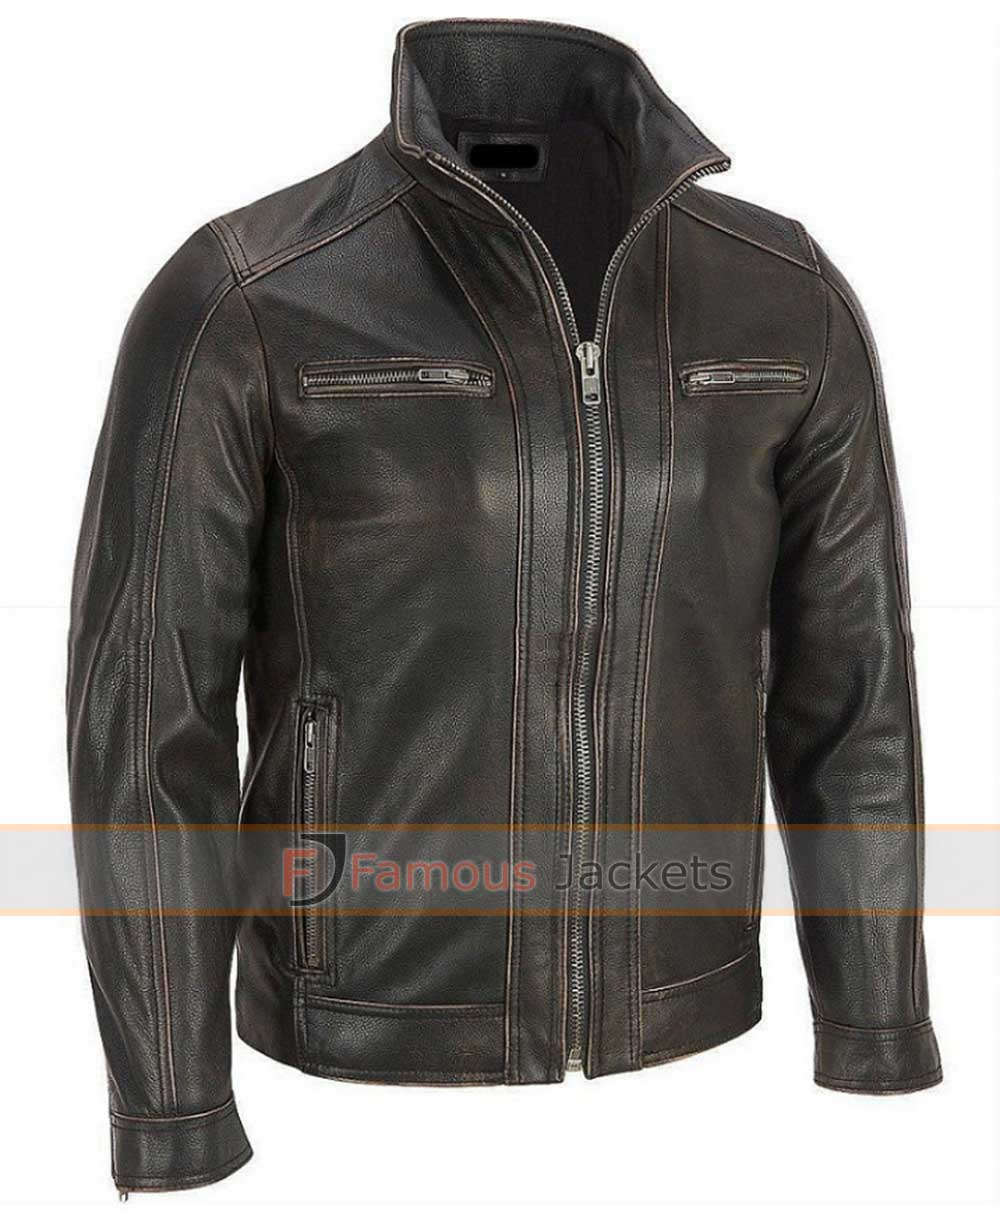 Leather jackets design